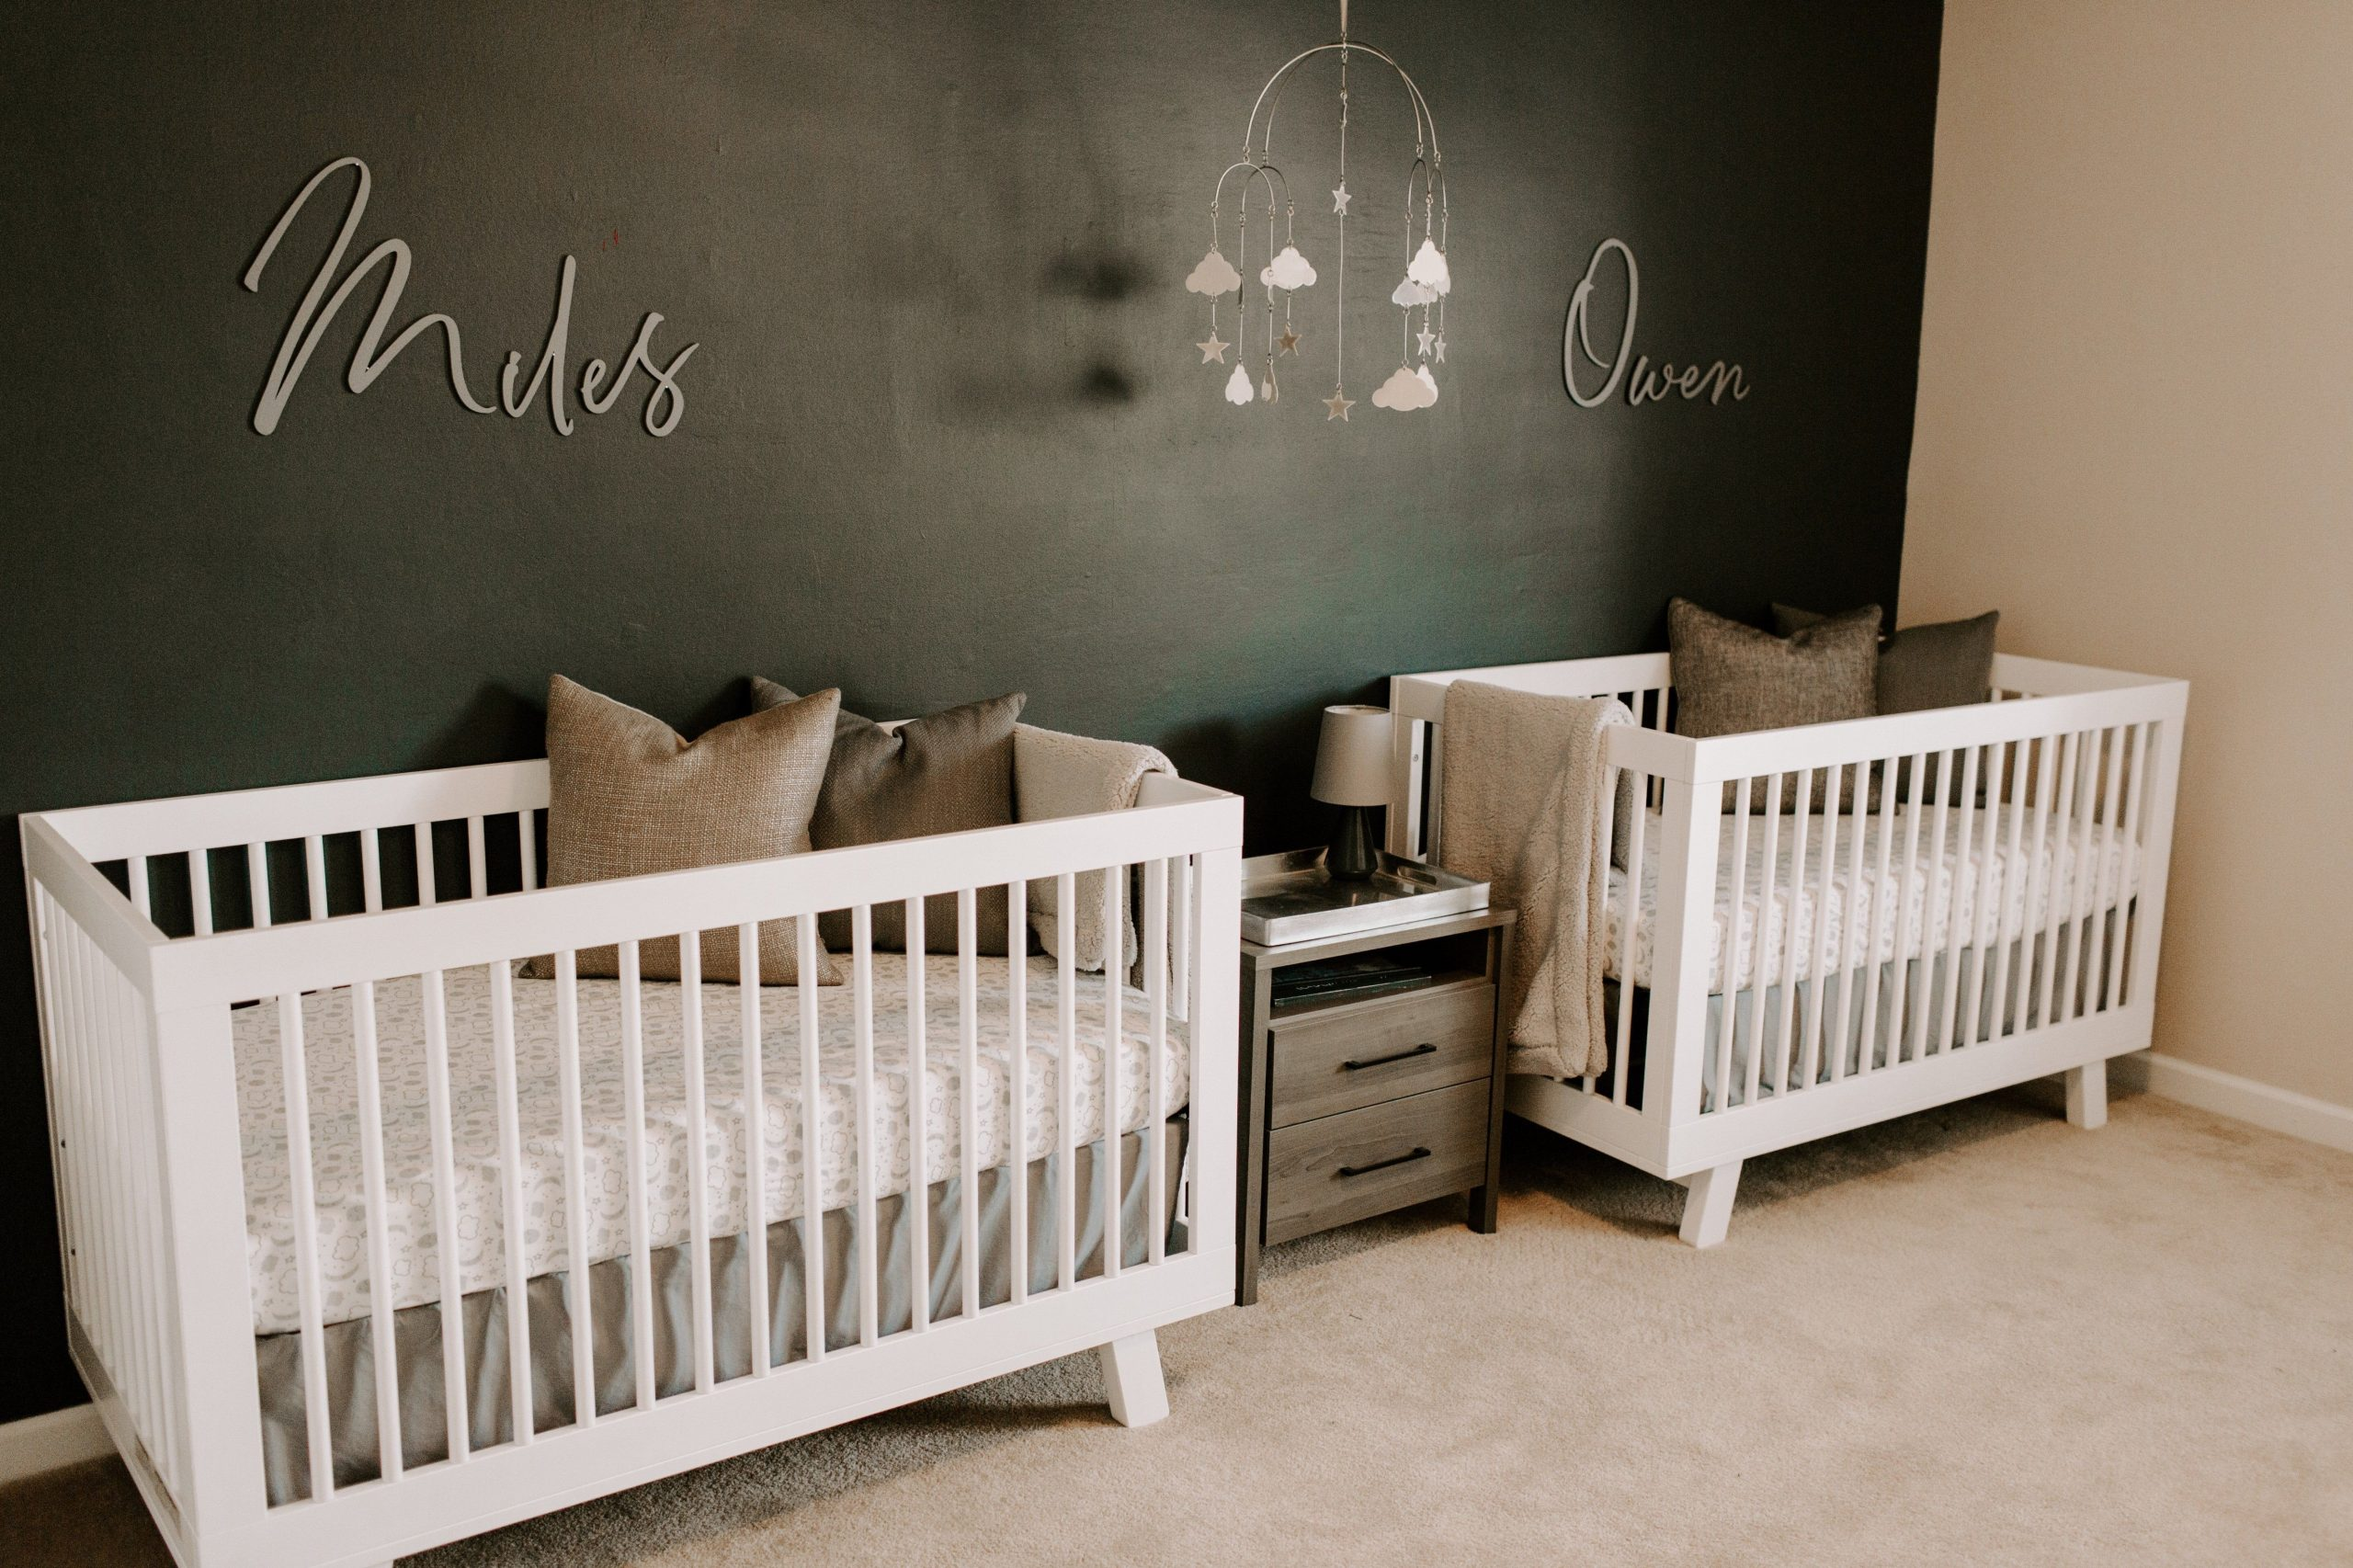 Nursery Name Sign for Baby Bedroom Wall Decor Wooden Letters Kids  - Baby Room Name Decor